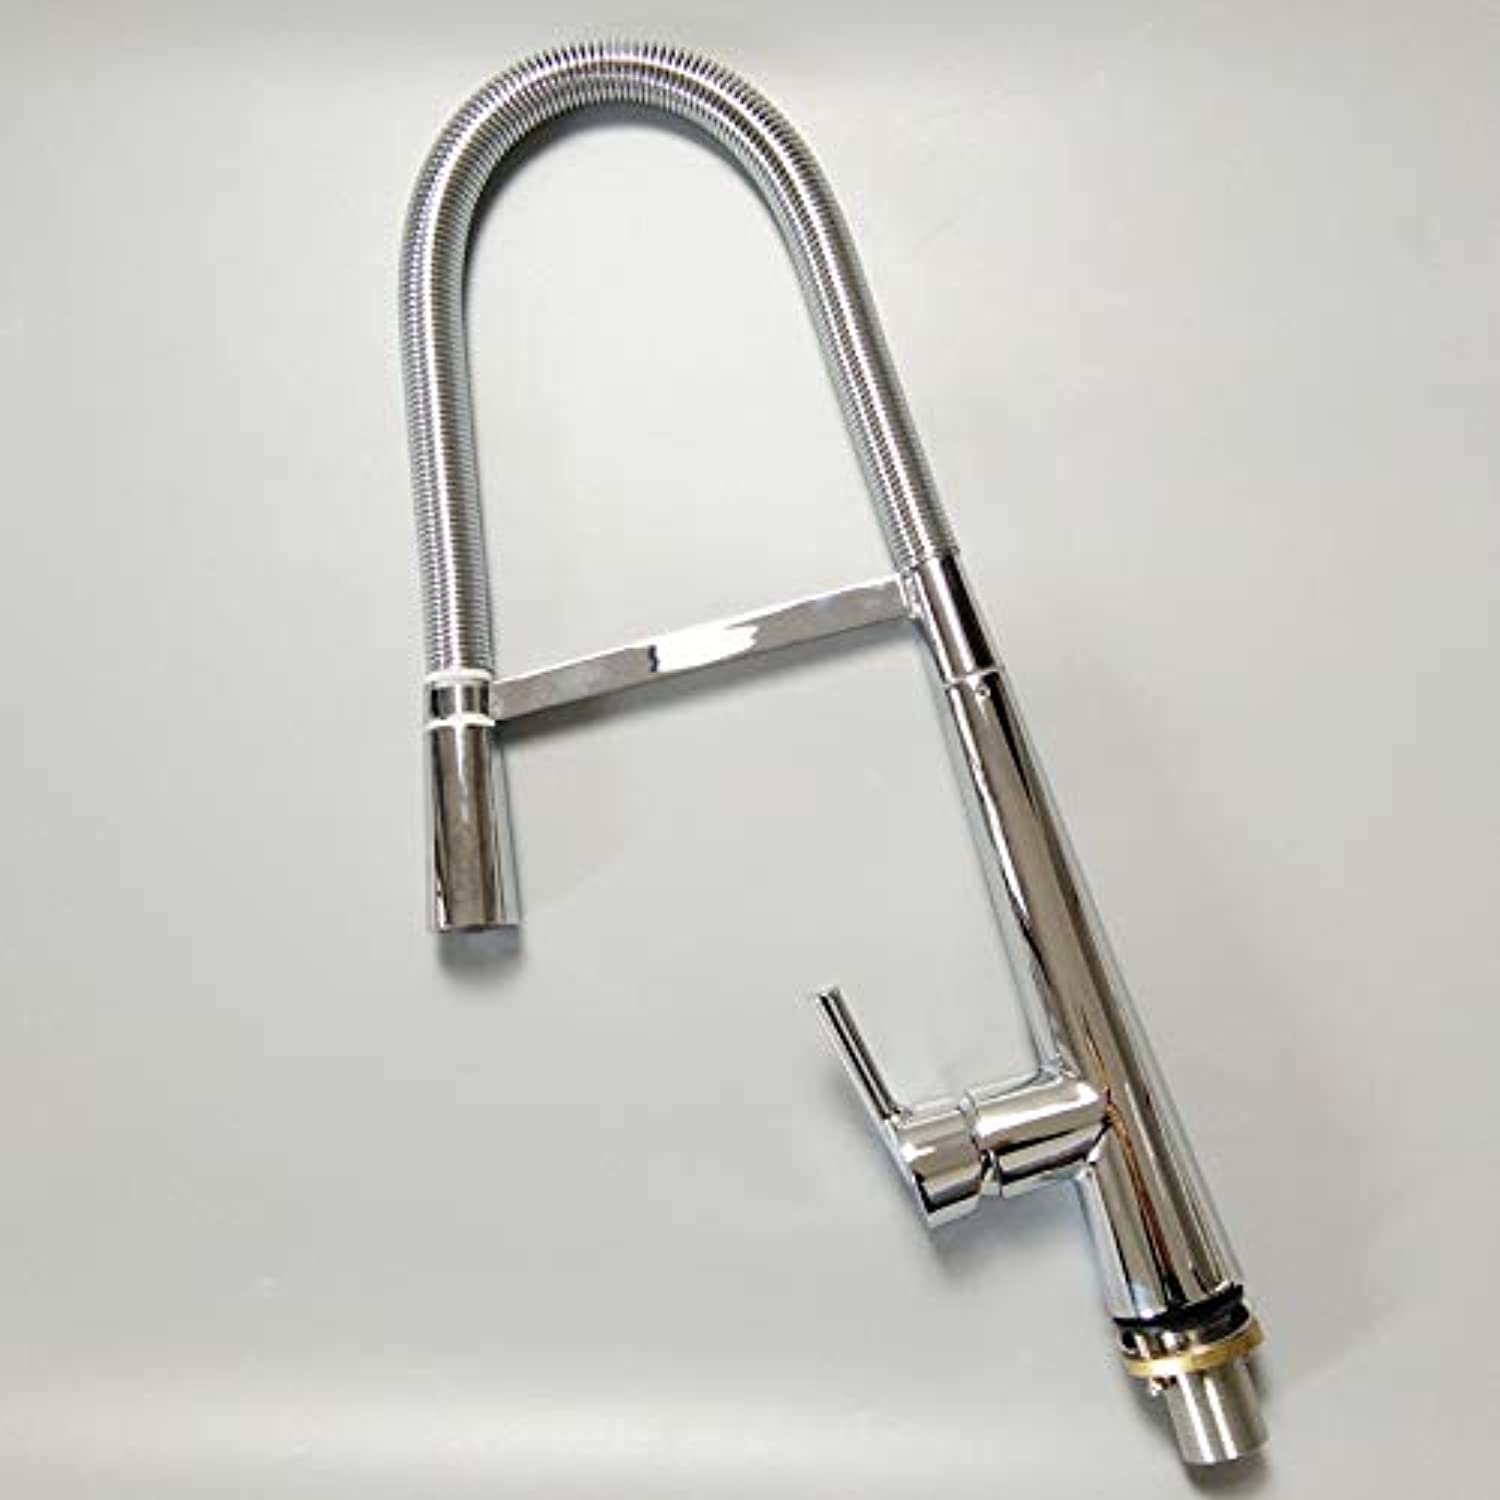 Avety The Kitchen Faucet Draws The Copper Body Faucet Screw Type Hot And Cold Water Faucet 01